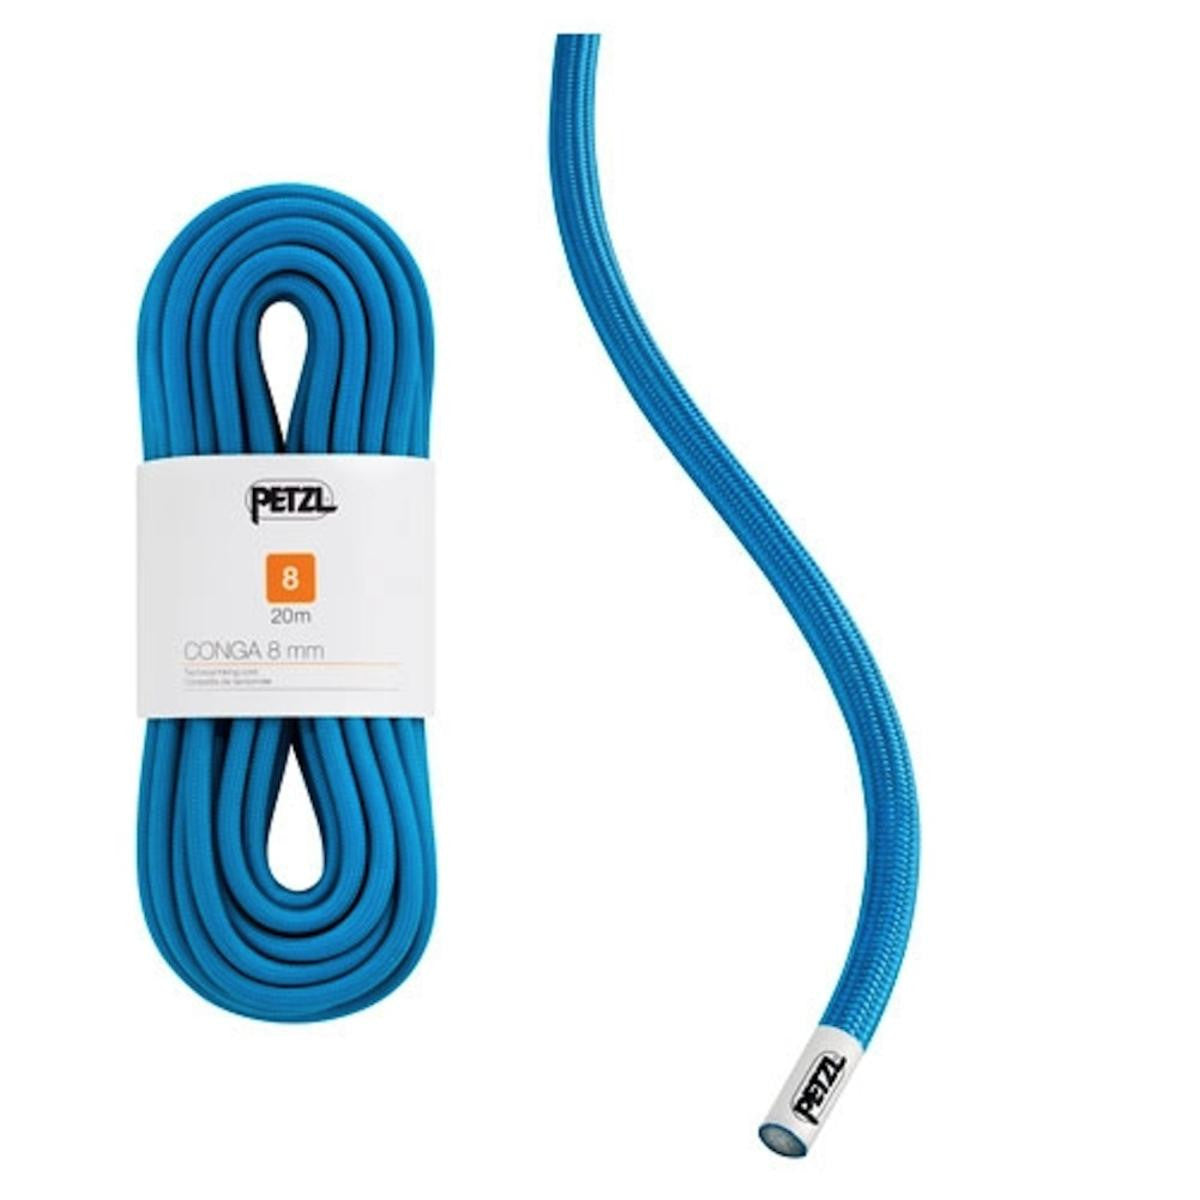 Petzl Conga Semi Static Cord Blue 8mm X 20m